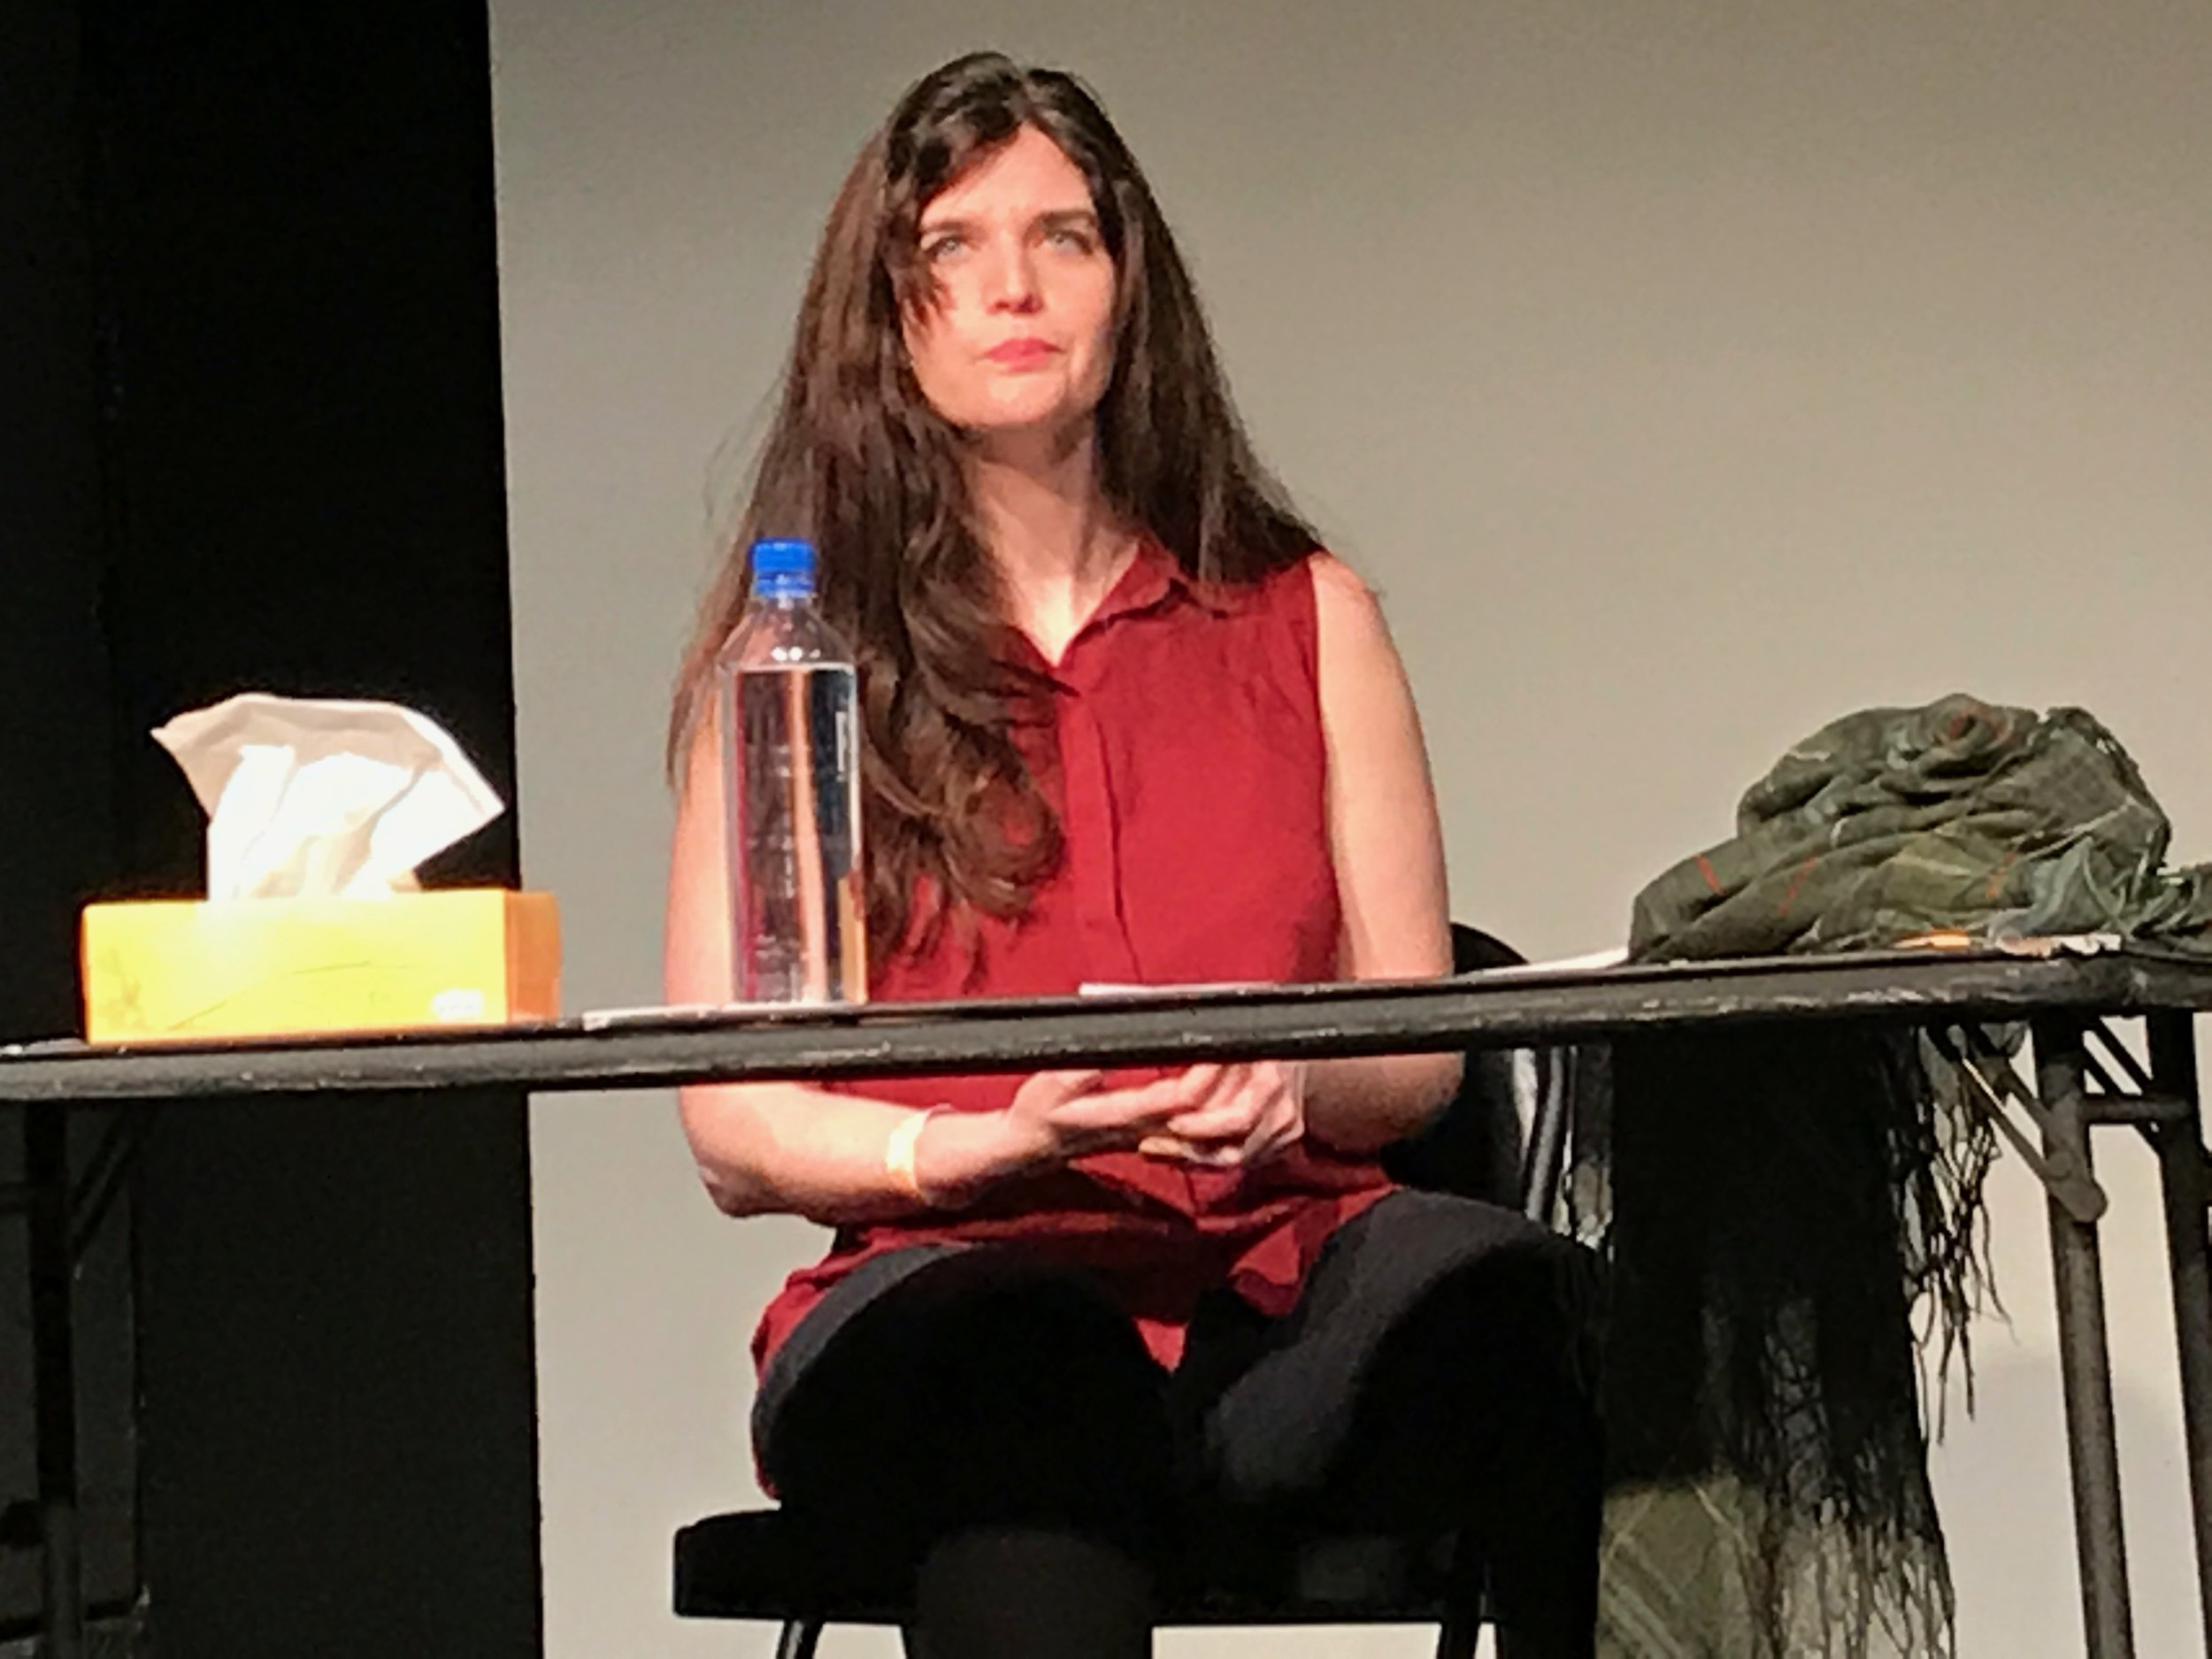 Lea Mckenna-Garcia in  Possessed is a Verb